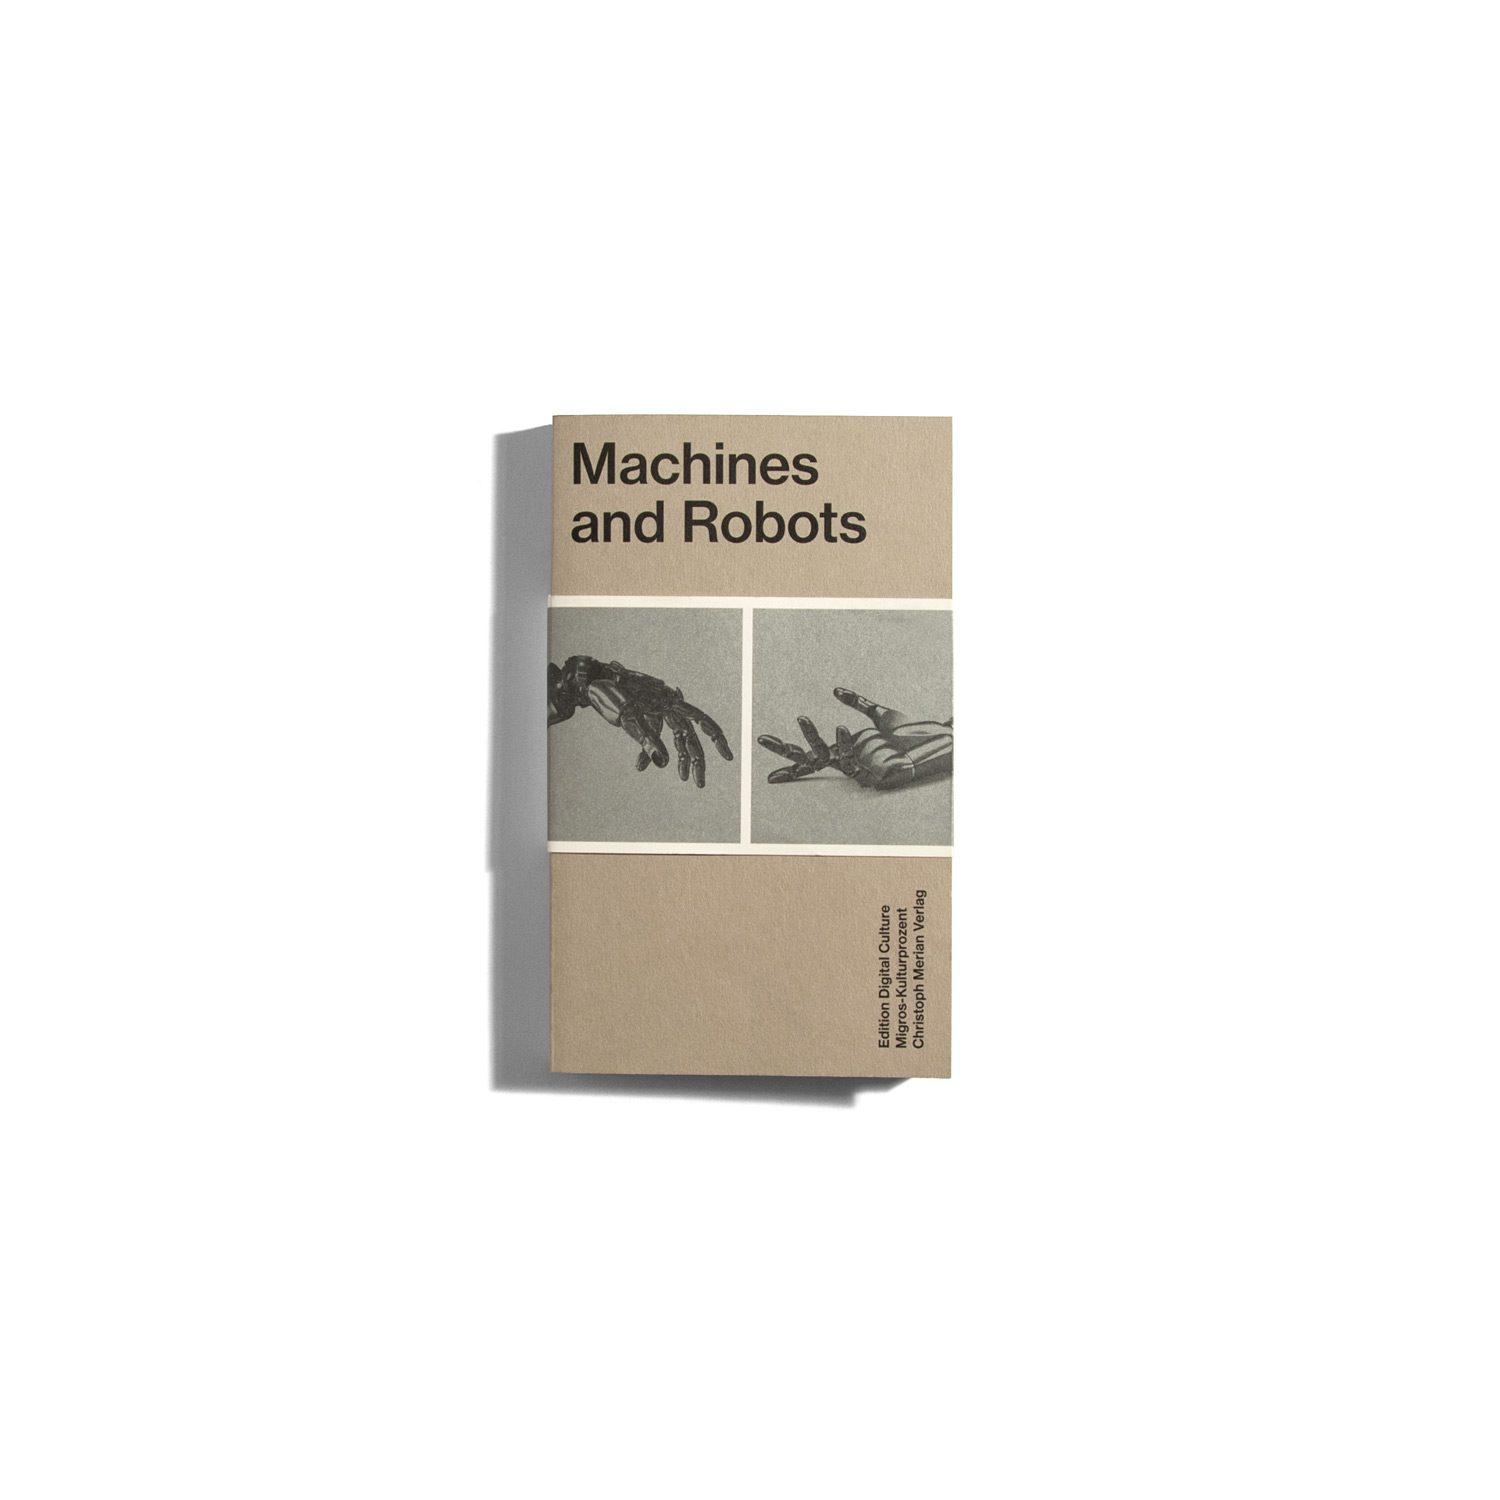 Machines and Robots